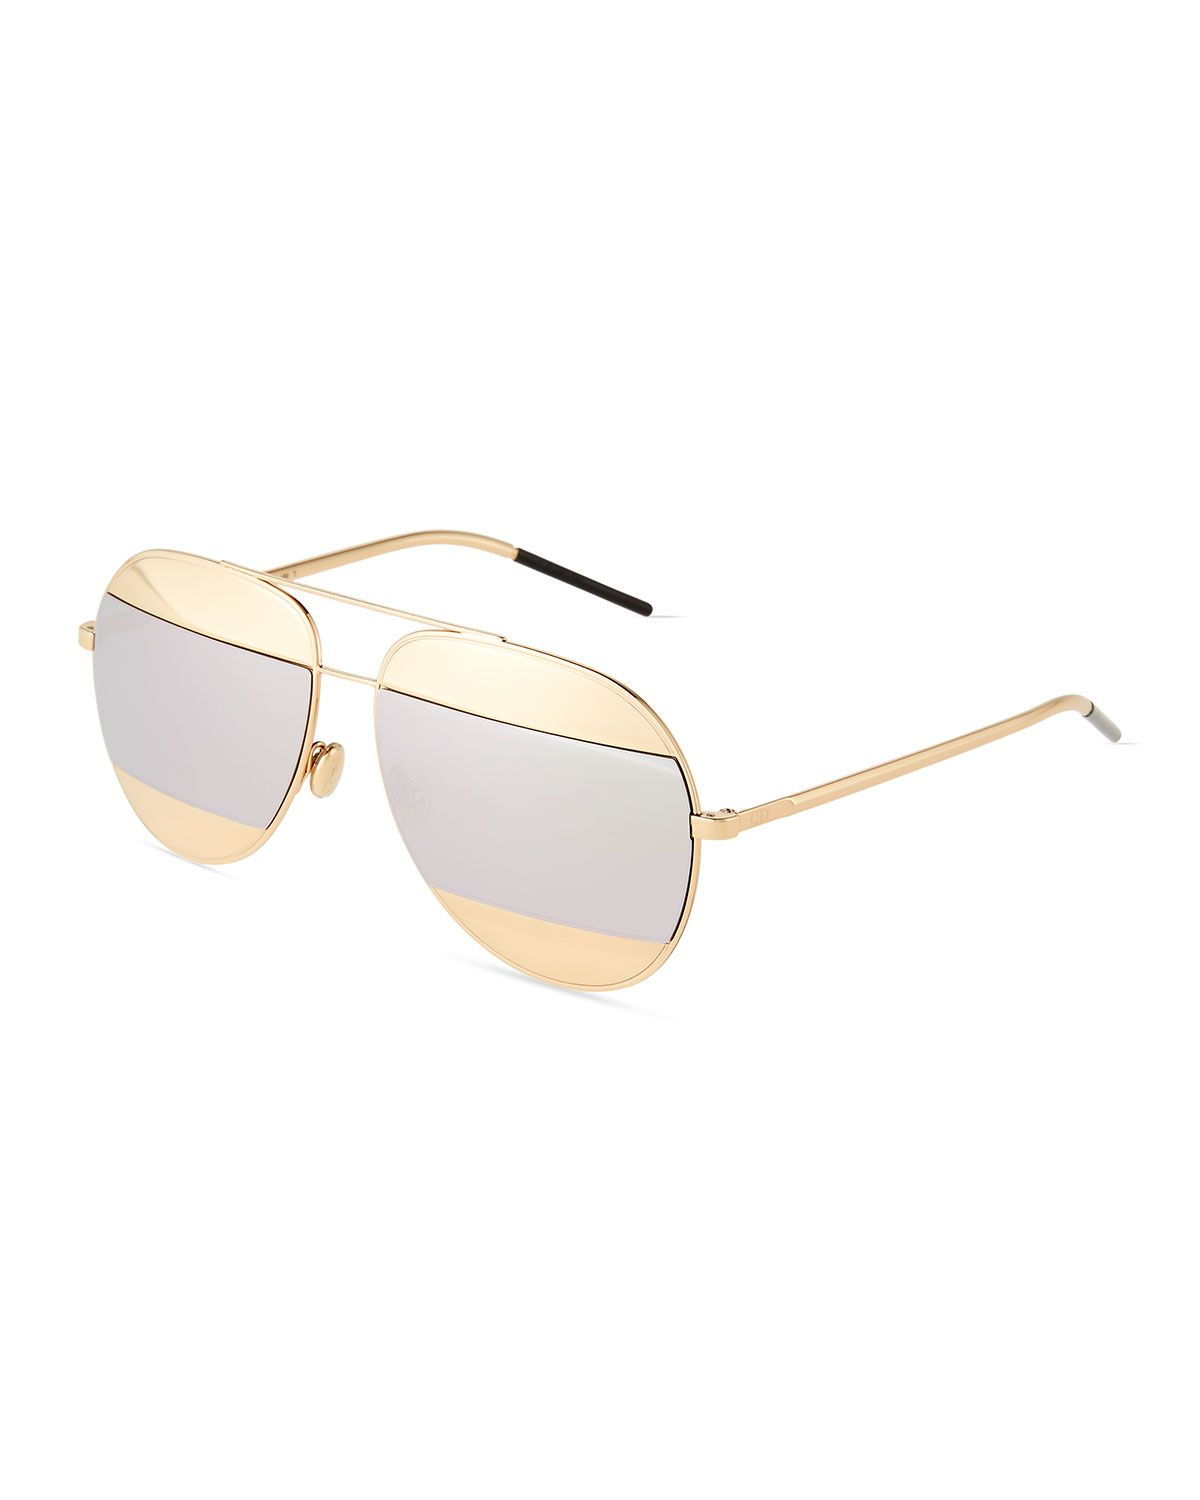 558a1fb26a28 DiorSplit Two-Tone Metallic Aviator Sunglasses